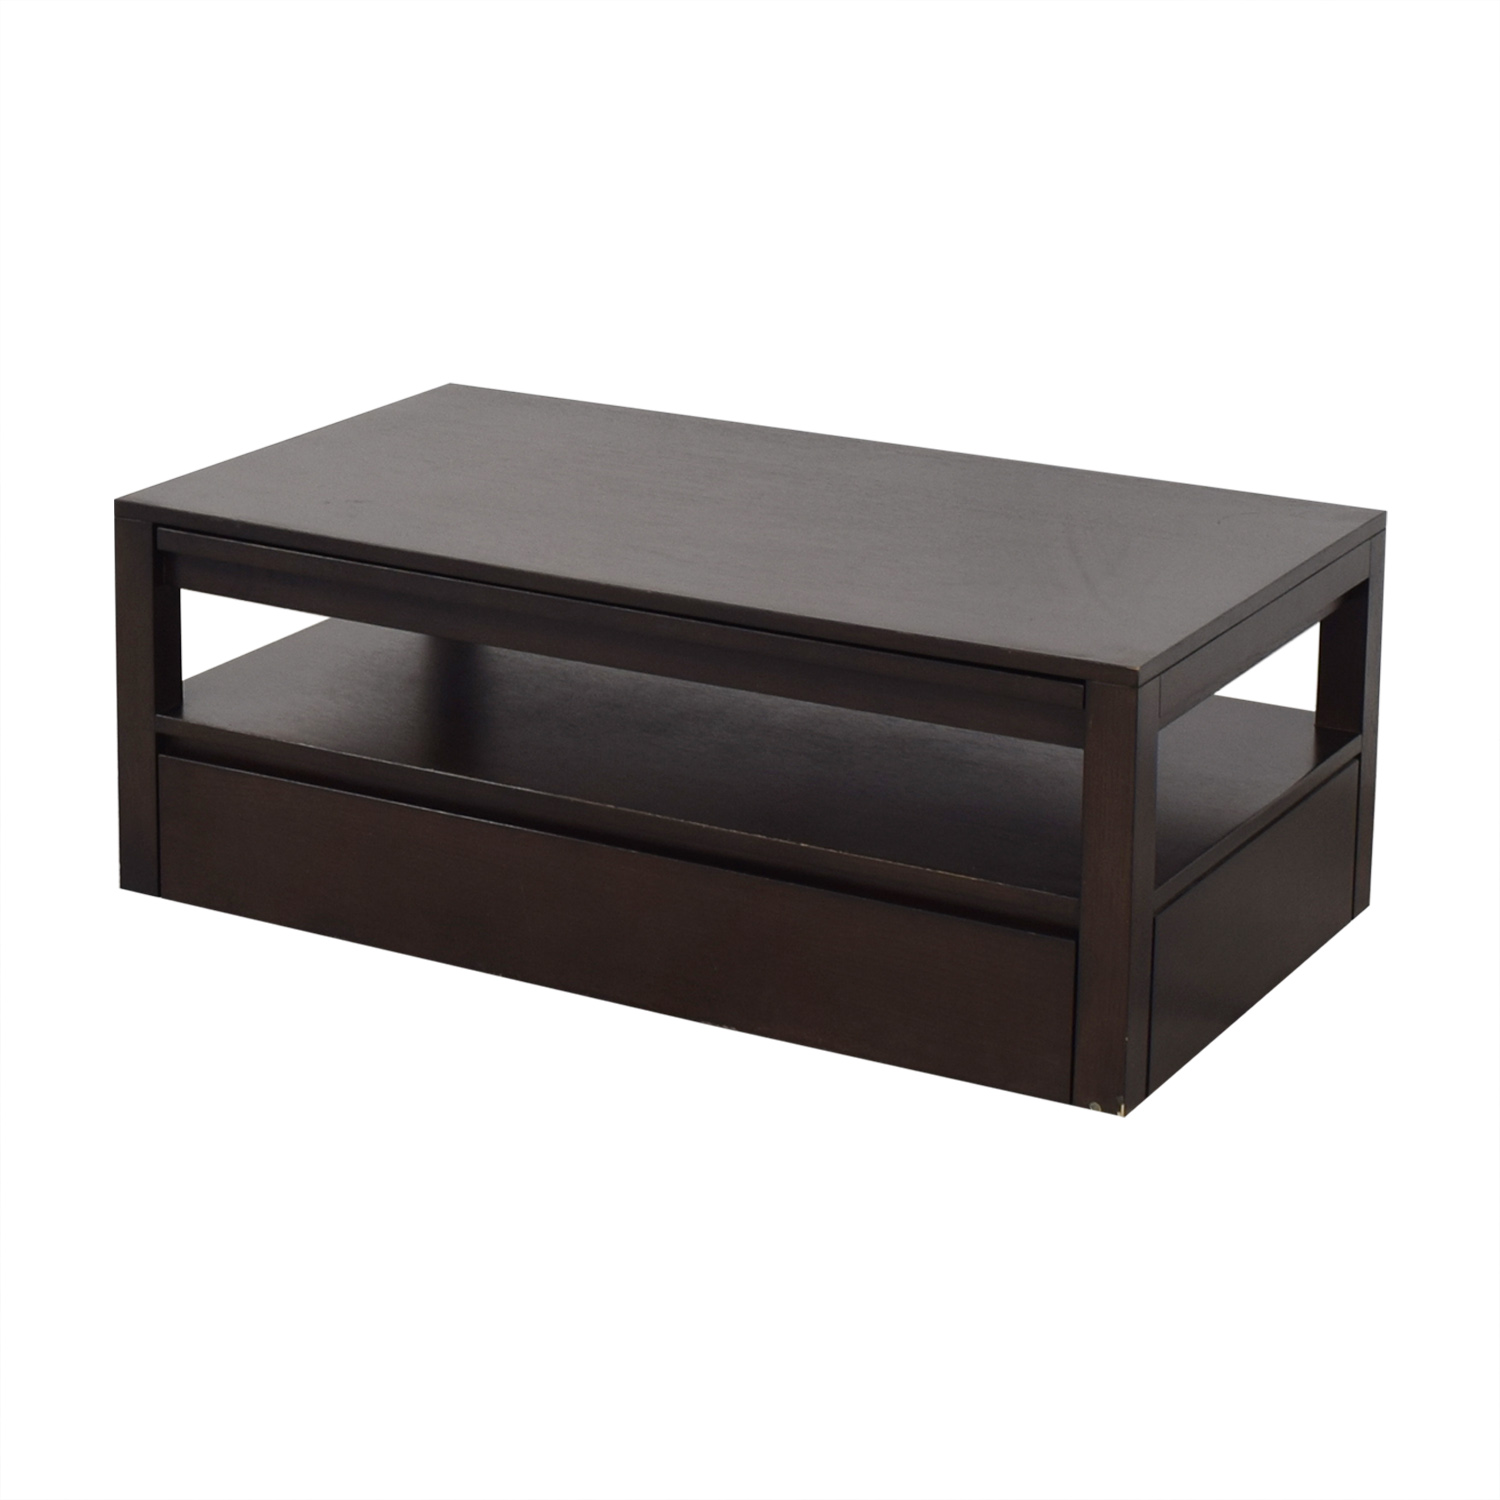 shop Crate & Barrel Crate & Barrel Expandable Coffee Table online